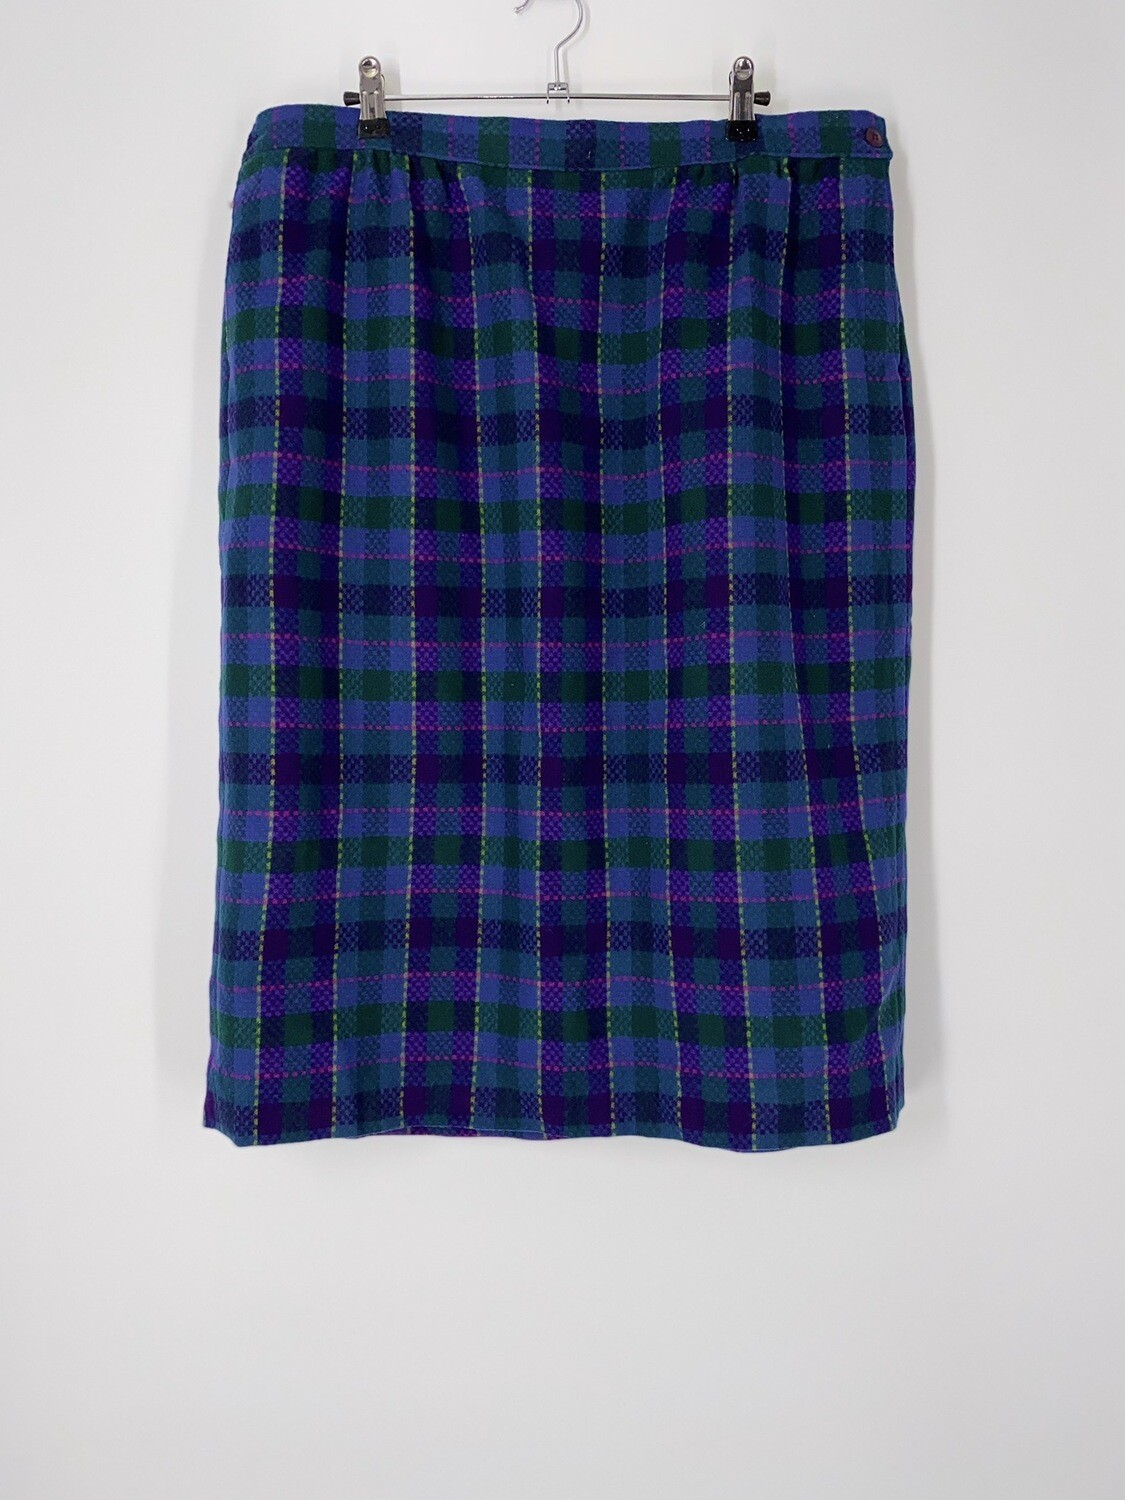 Pendleton Purple Plaid Skirt Size L